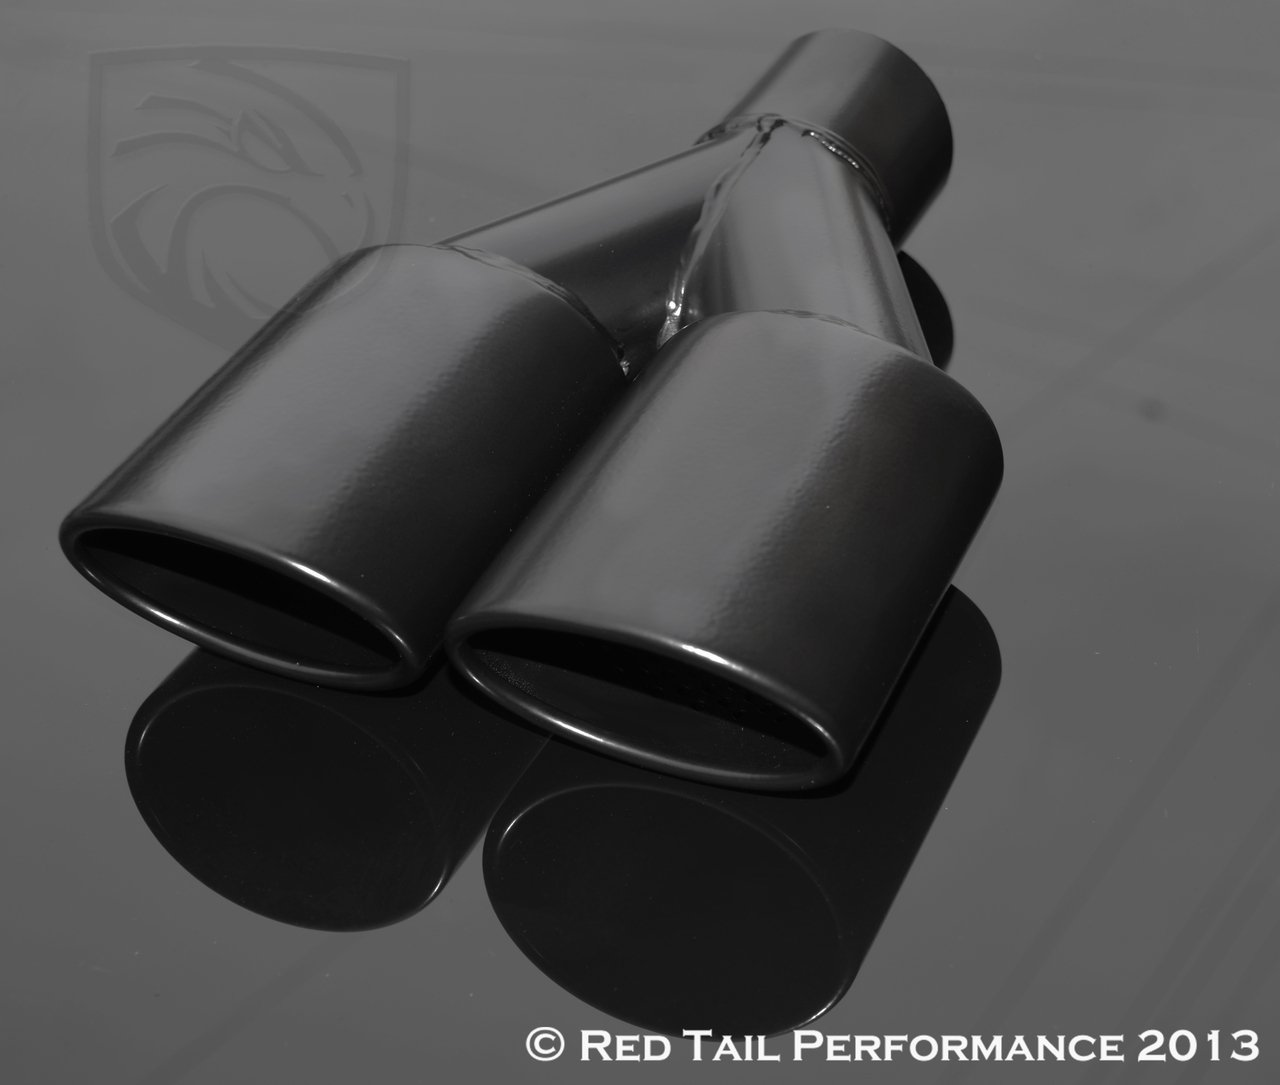 Black Powder Coated AMG Style Exhaust Muffler Tip Dual Oval Forward Slash Cut Rolled Edge 2.25'' Inlet / ID, 3.5''X2.5'' Outlet / OD, 9.75'' Length, 7.375'' Outer Width